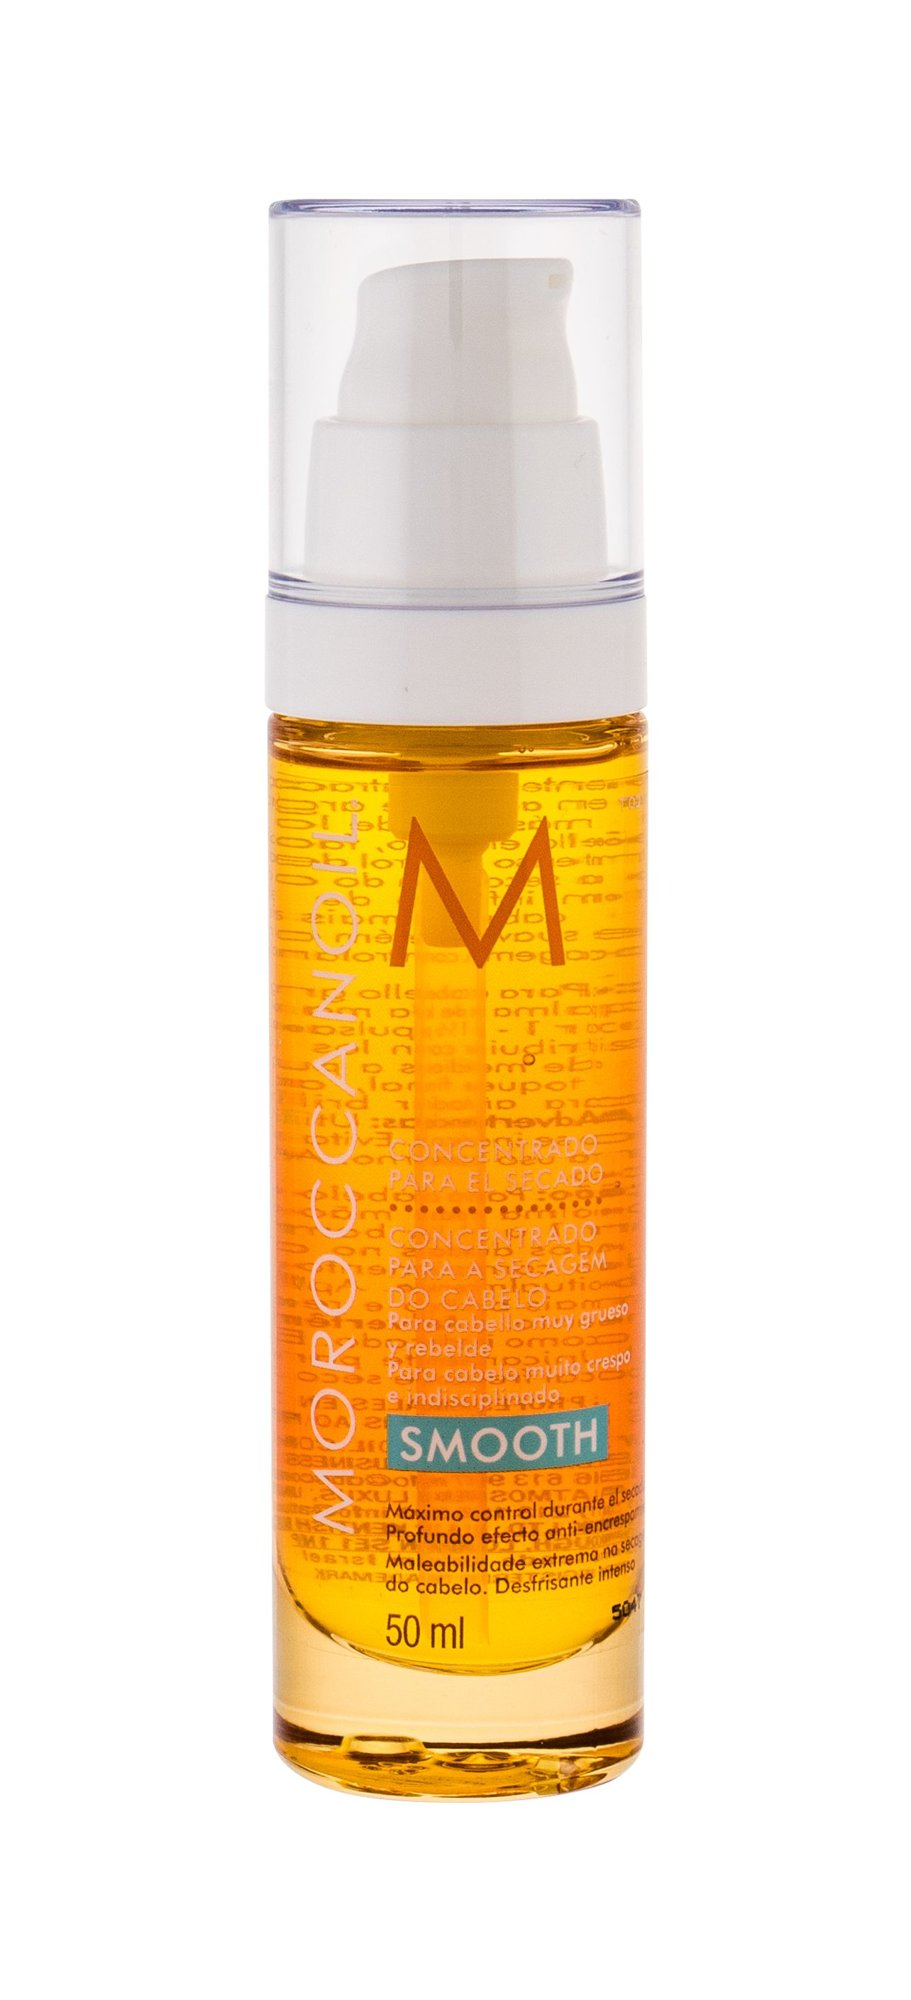 Moroccanoil Smooth Hair Smoothing 50ml